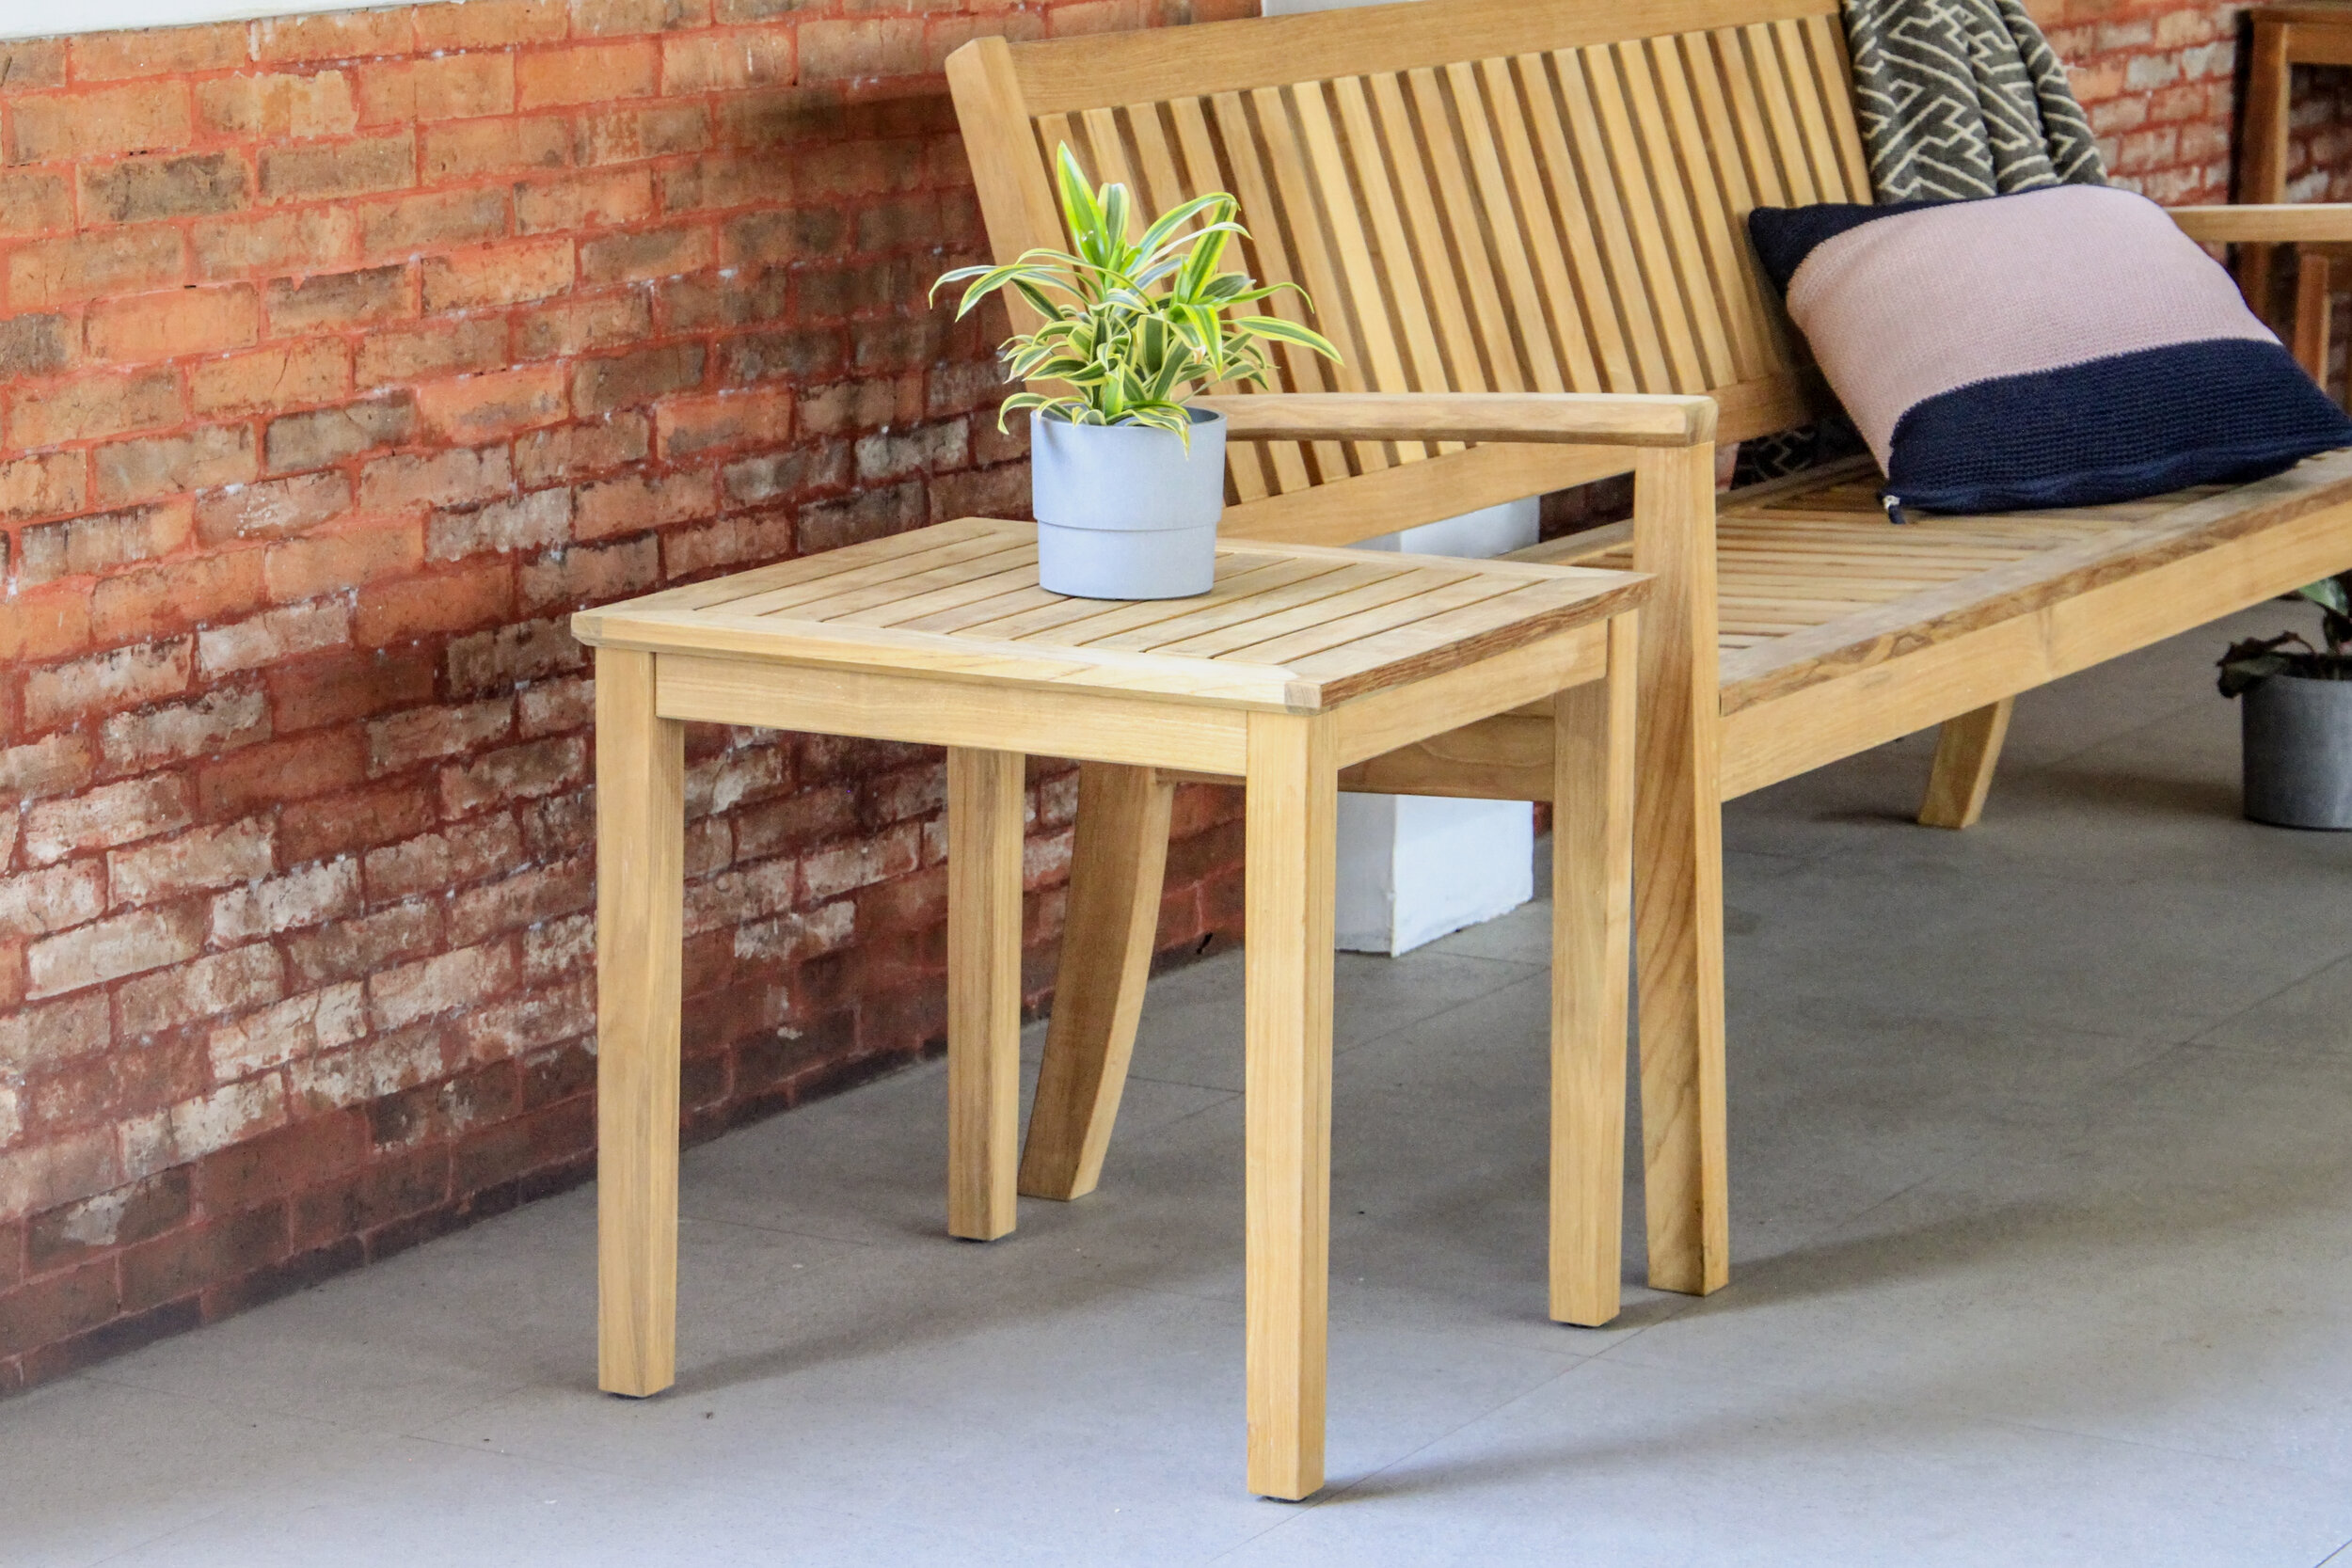 CAMBRIDGE BENCH AND LAMP TABLE